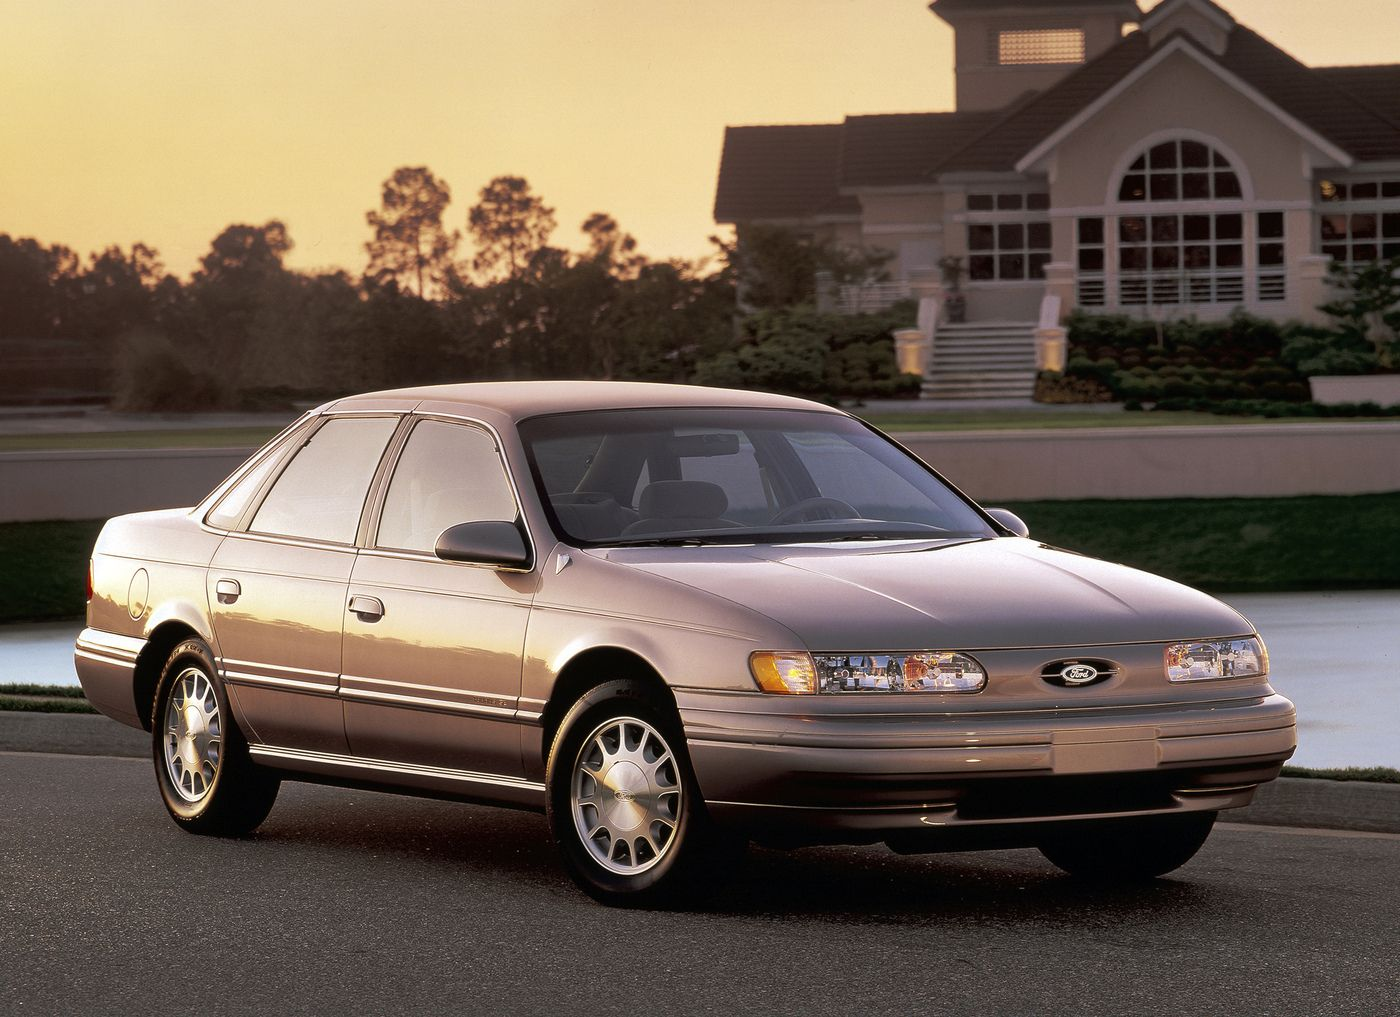 1992 Ford Taurus >> 1992 Ford Taurus Ford Taurus Sho Taurus Car Ford